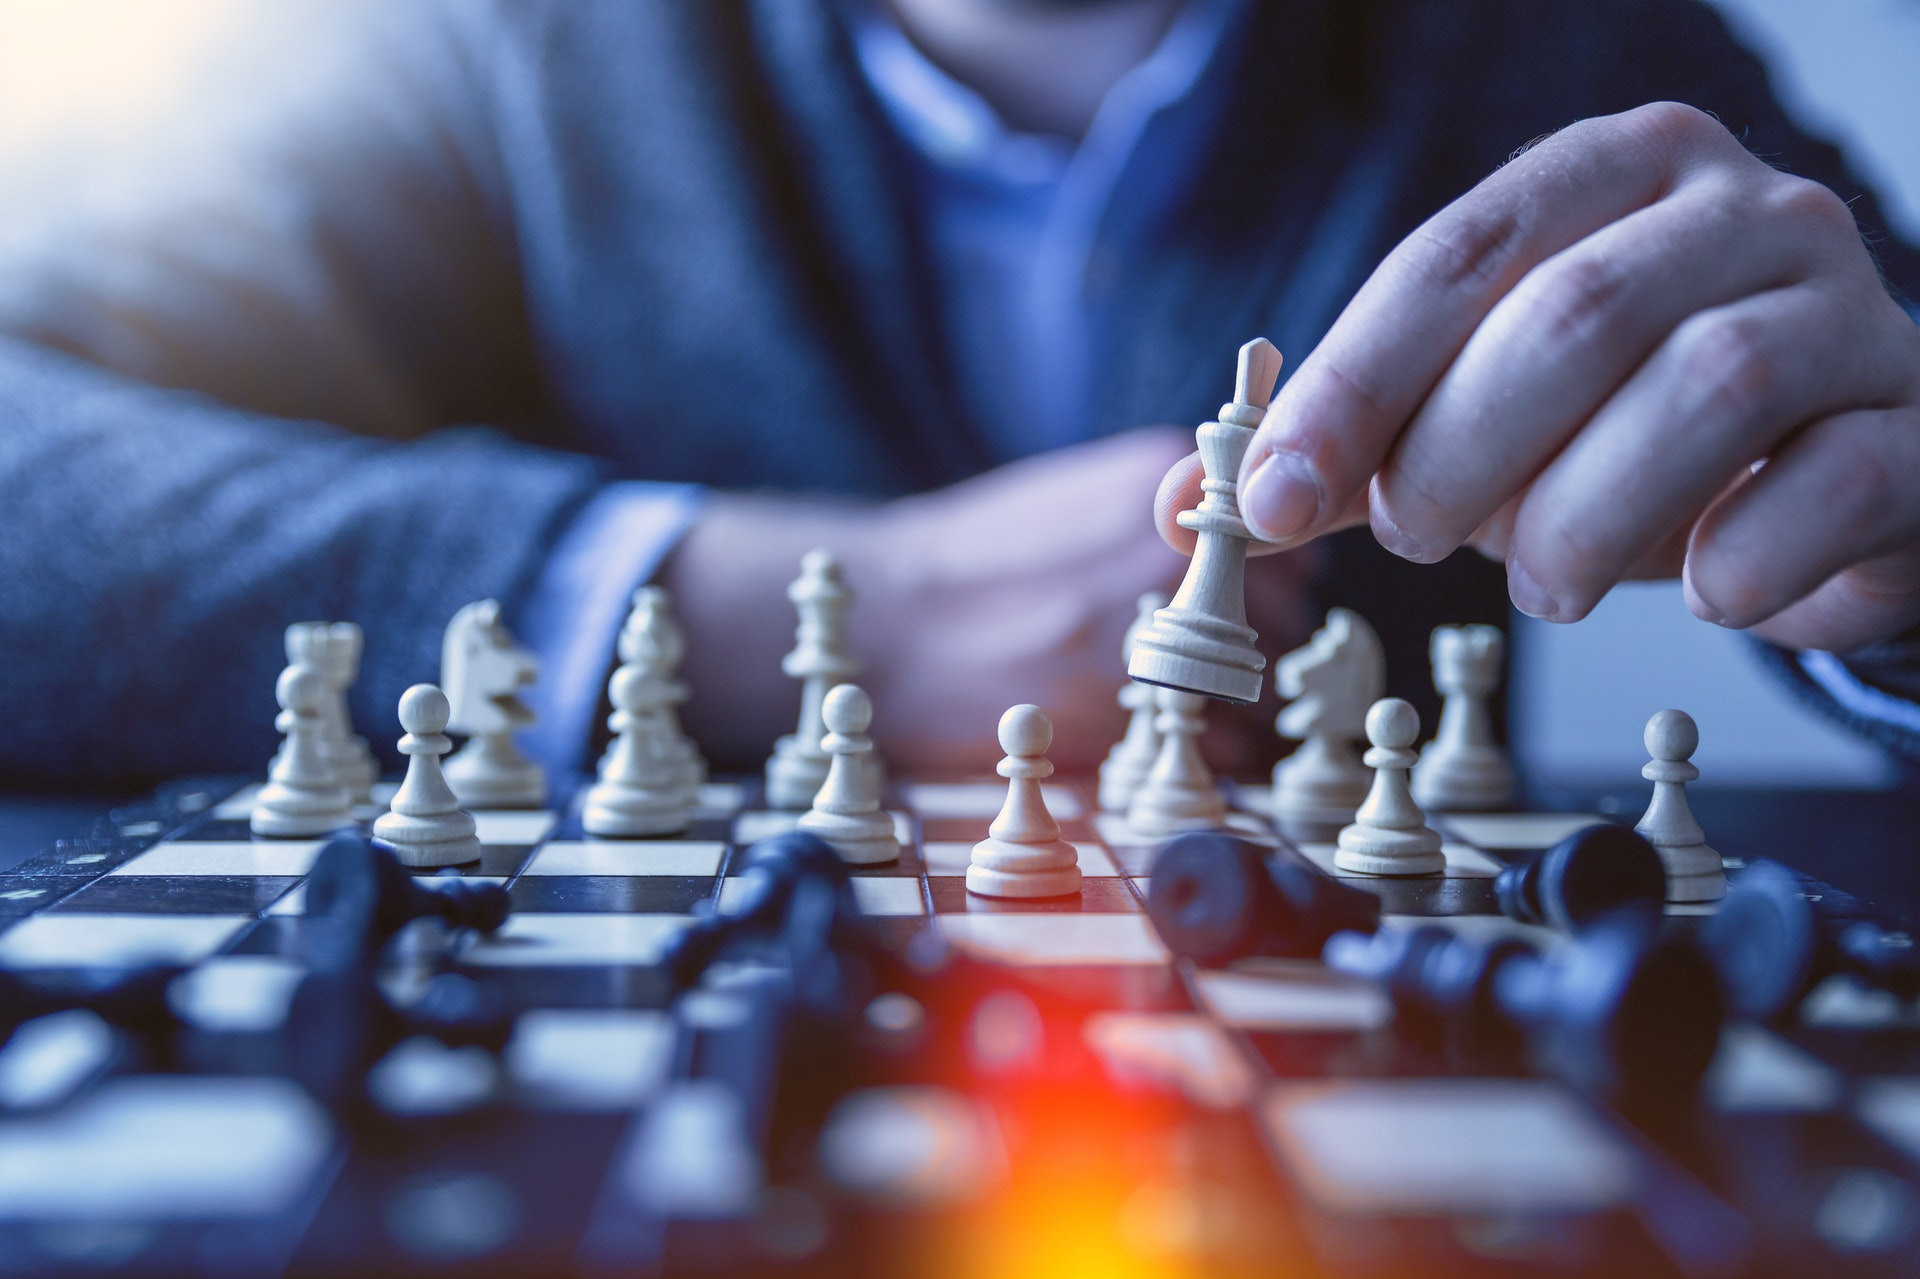 Gamification can redefine the cybersecurity demo experience